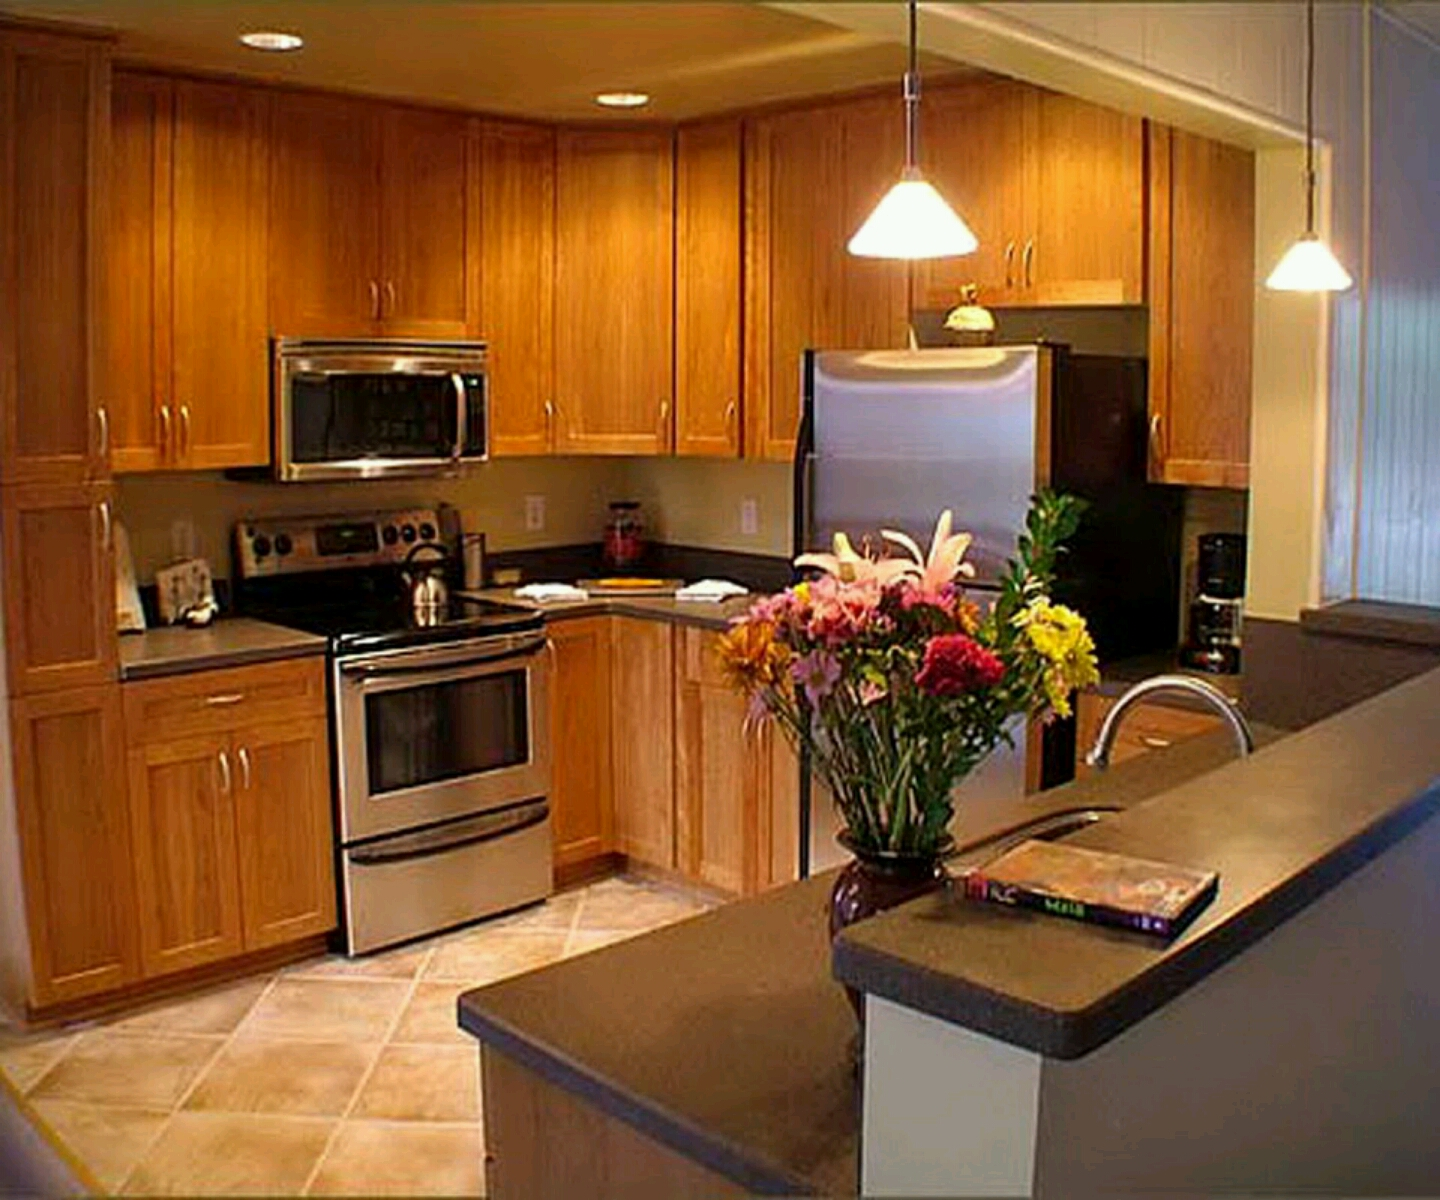 Modern wooden kitchen cabinets designs furniture gallery for Kitchen designs cabinets